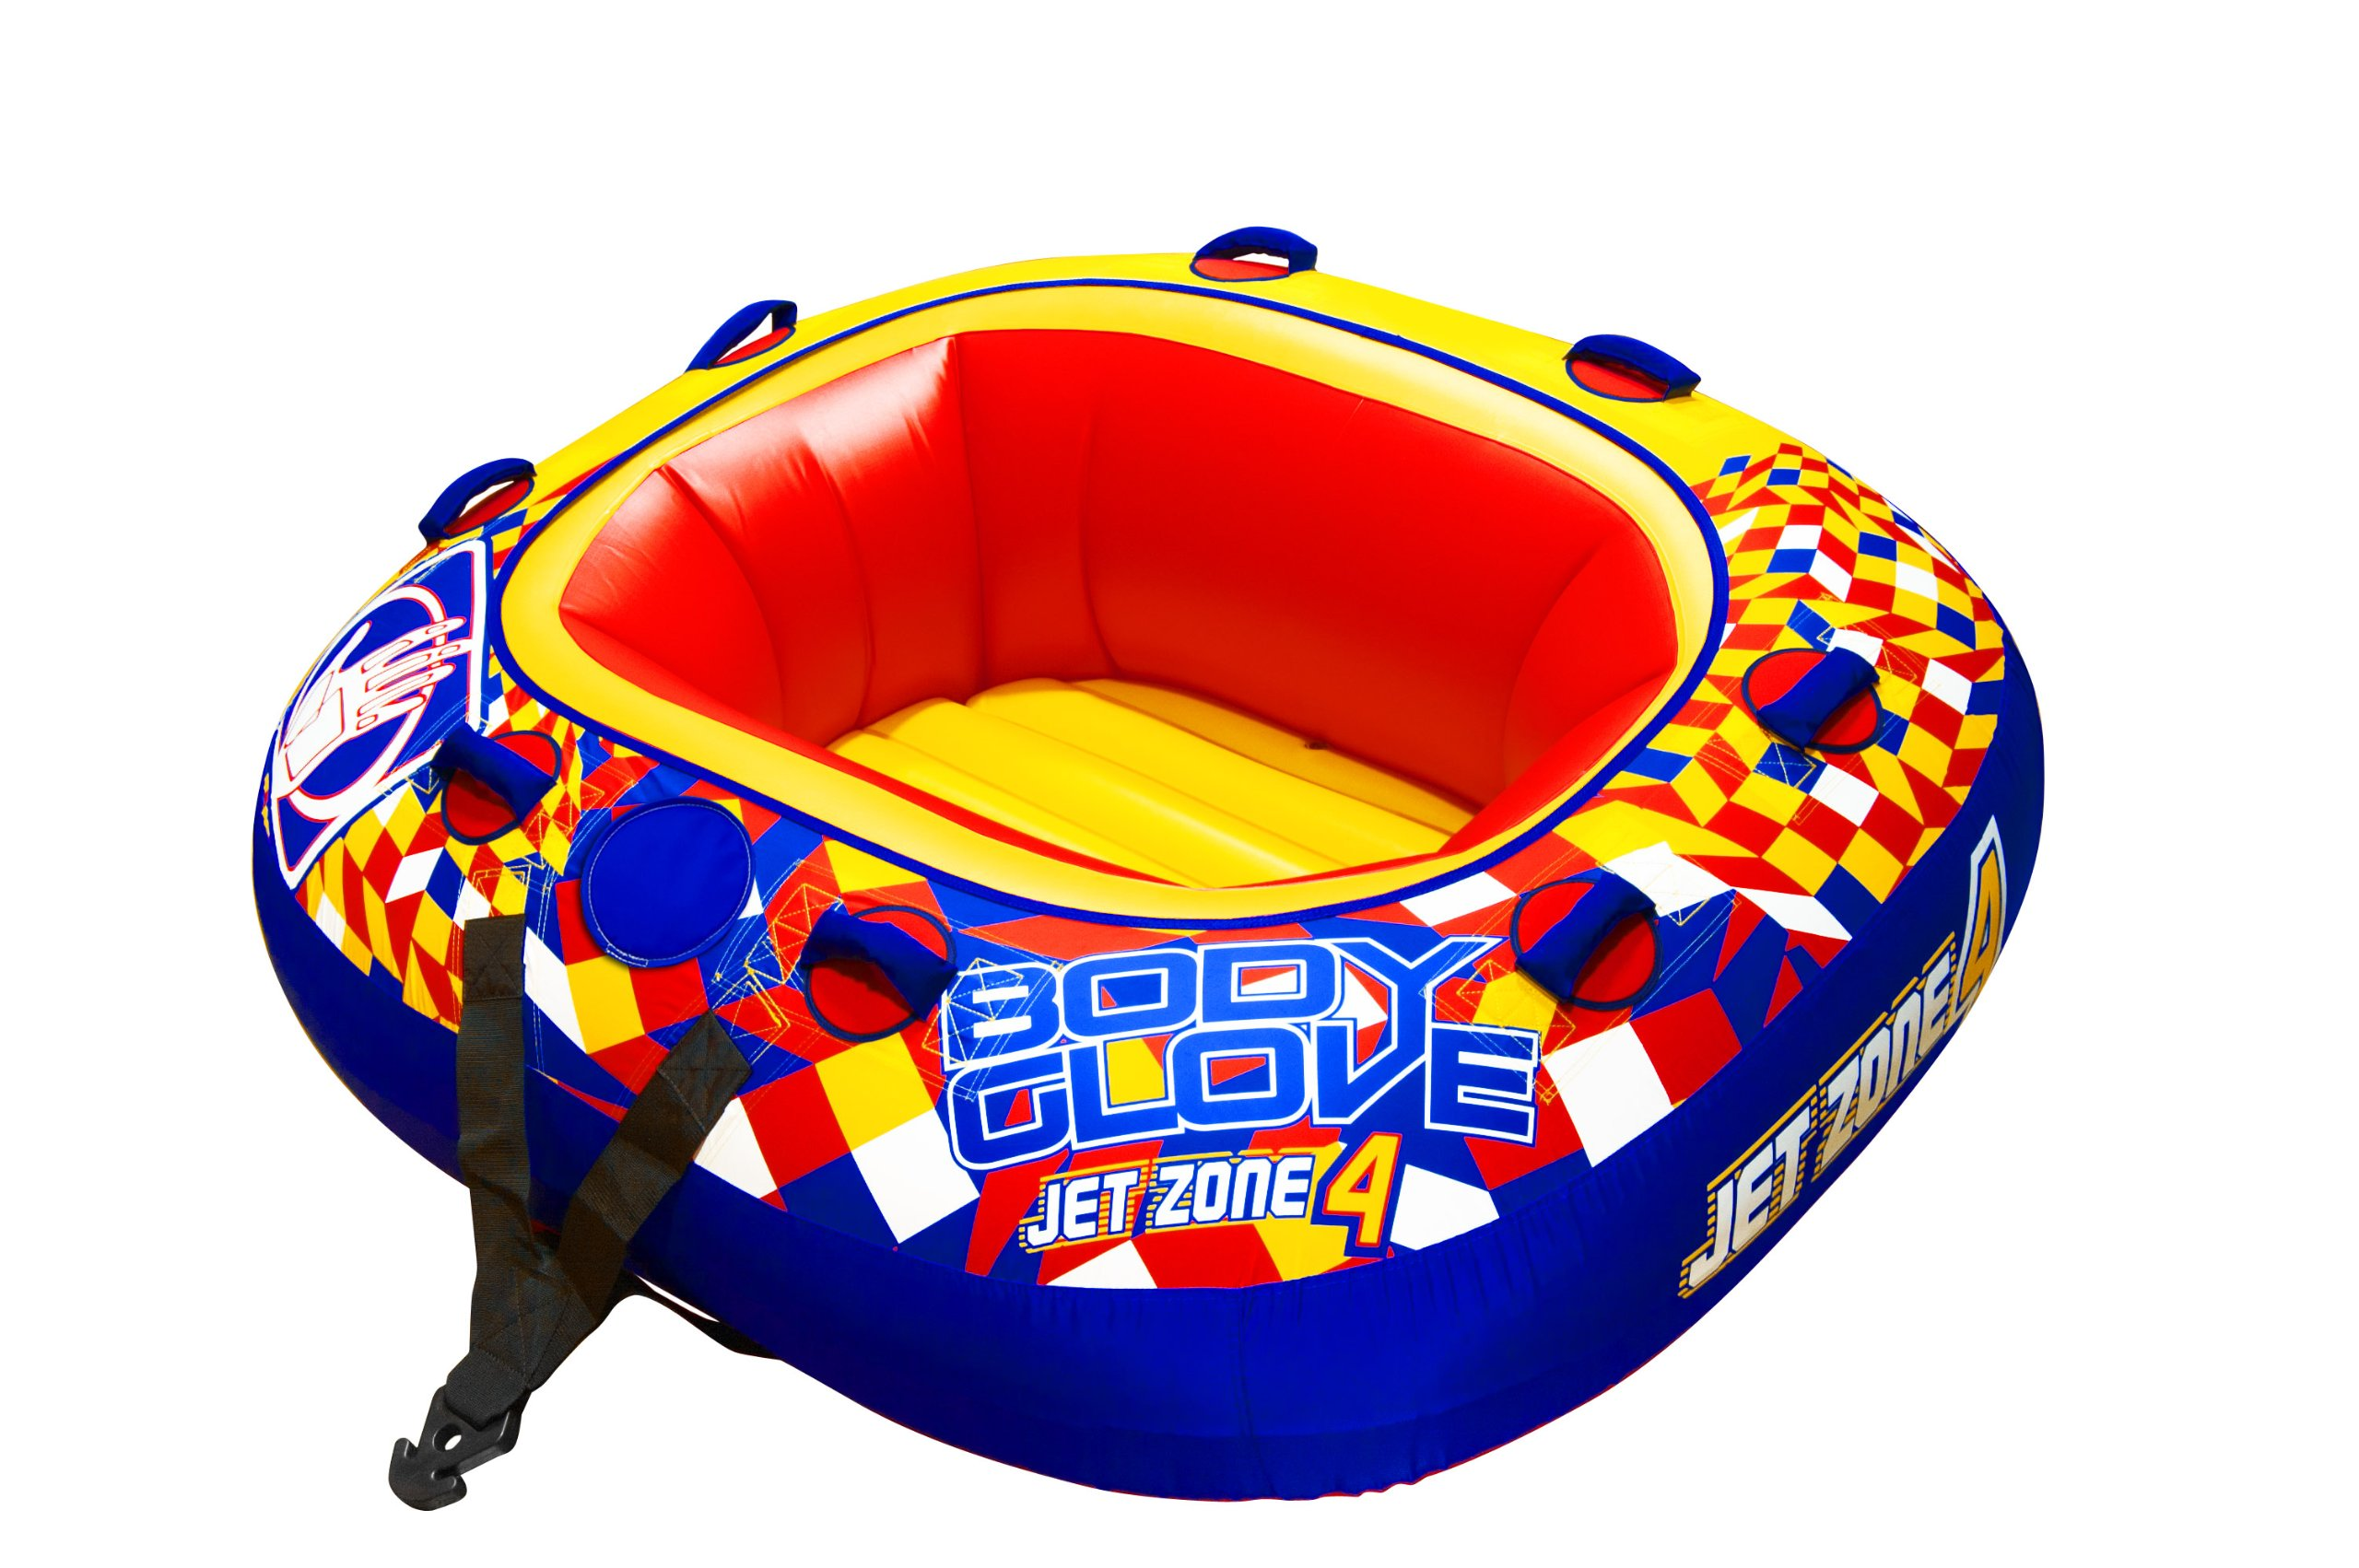 Body Glove 15543 Jet Zone 4 Inflatable 4 Person Towable by jetpilot